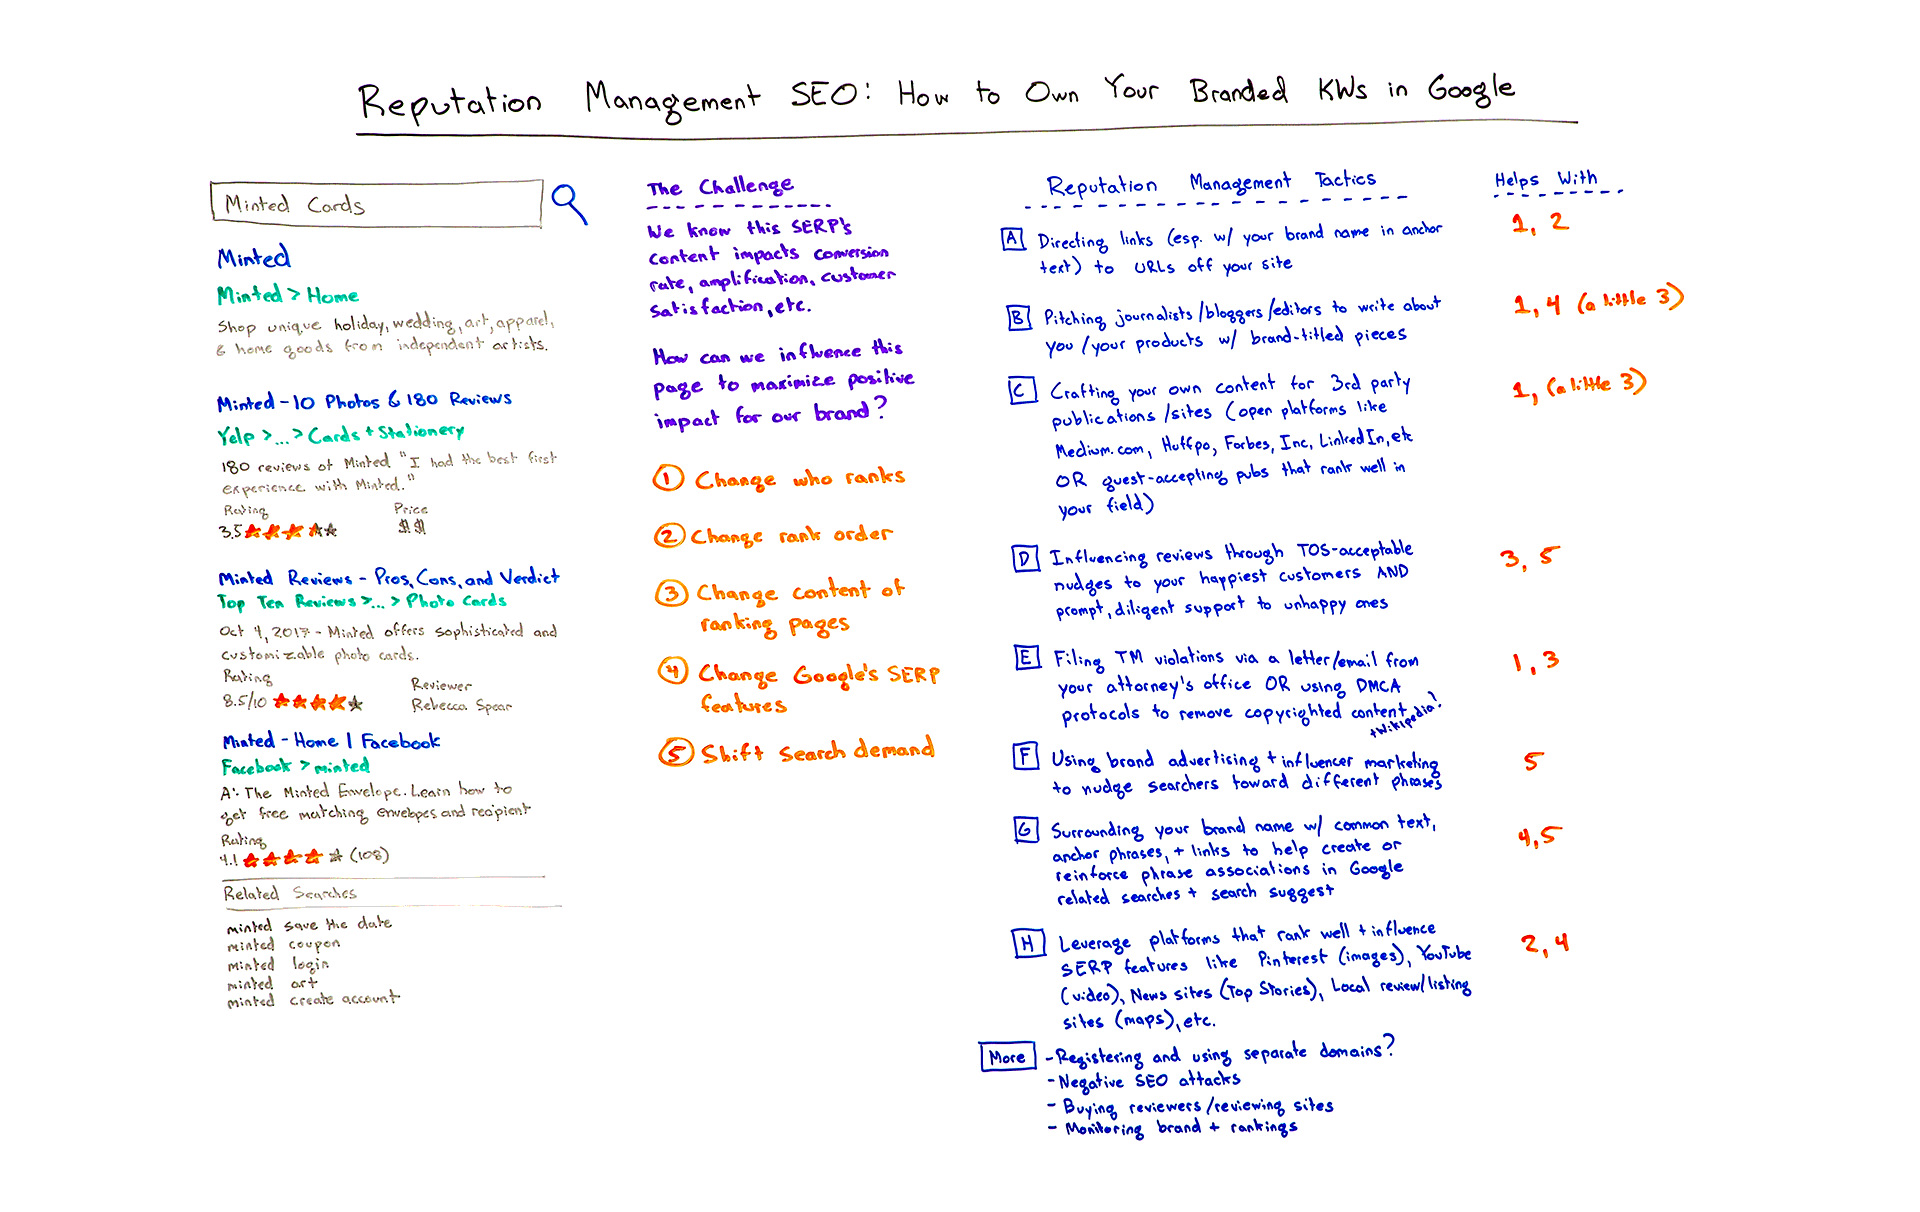 How to Own Your Branded Keywords in Google